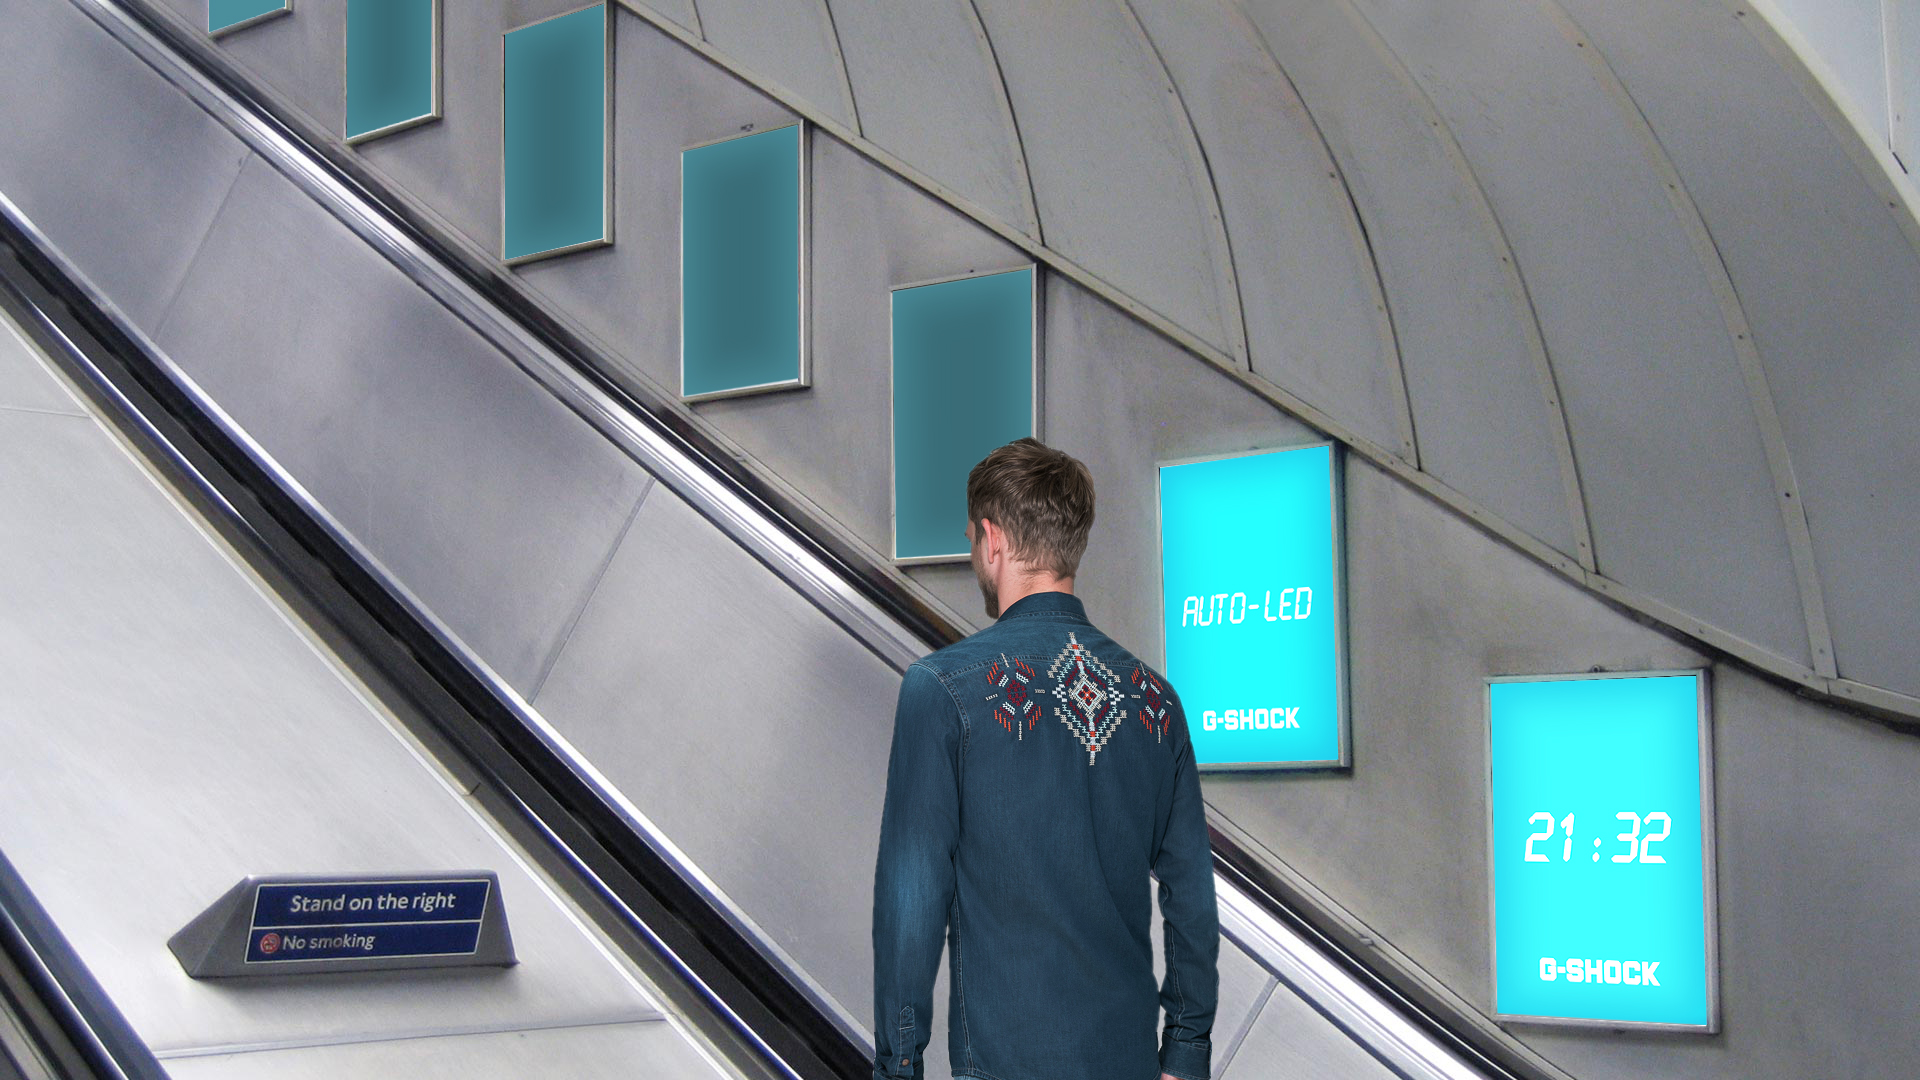 Series of panels next to the escalator. The panels would contain movement sensors and automatically light up when a person passes by.